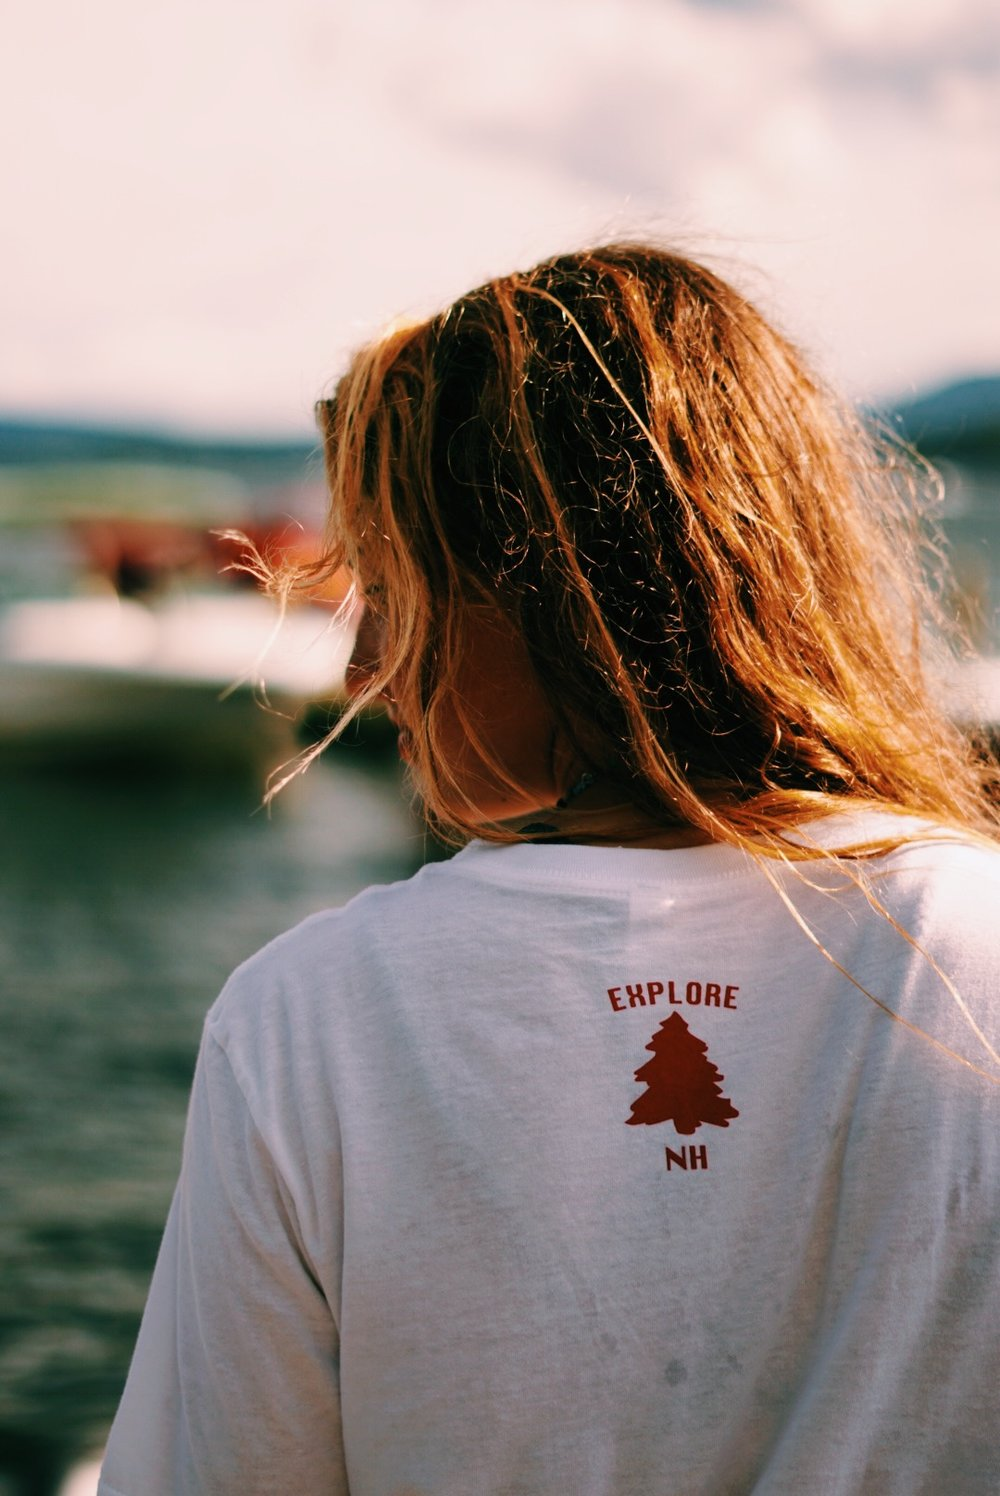 Since 2015 - With the idea popping into our heads on Lake Winnipesaukee, it has been a long journey from selling out of a car, to selling in stores across New Hampshire.